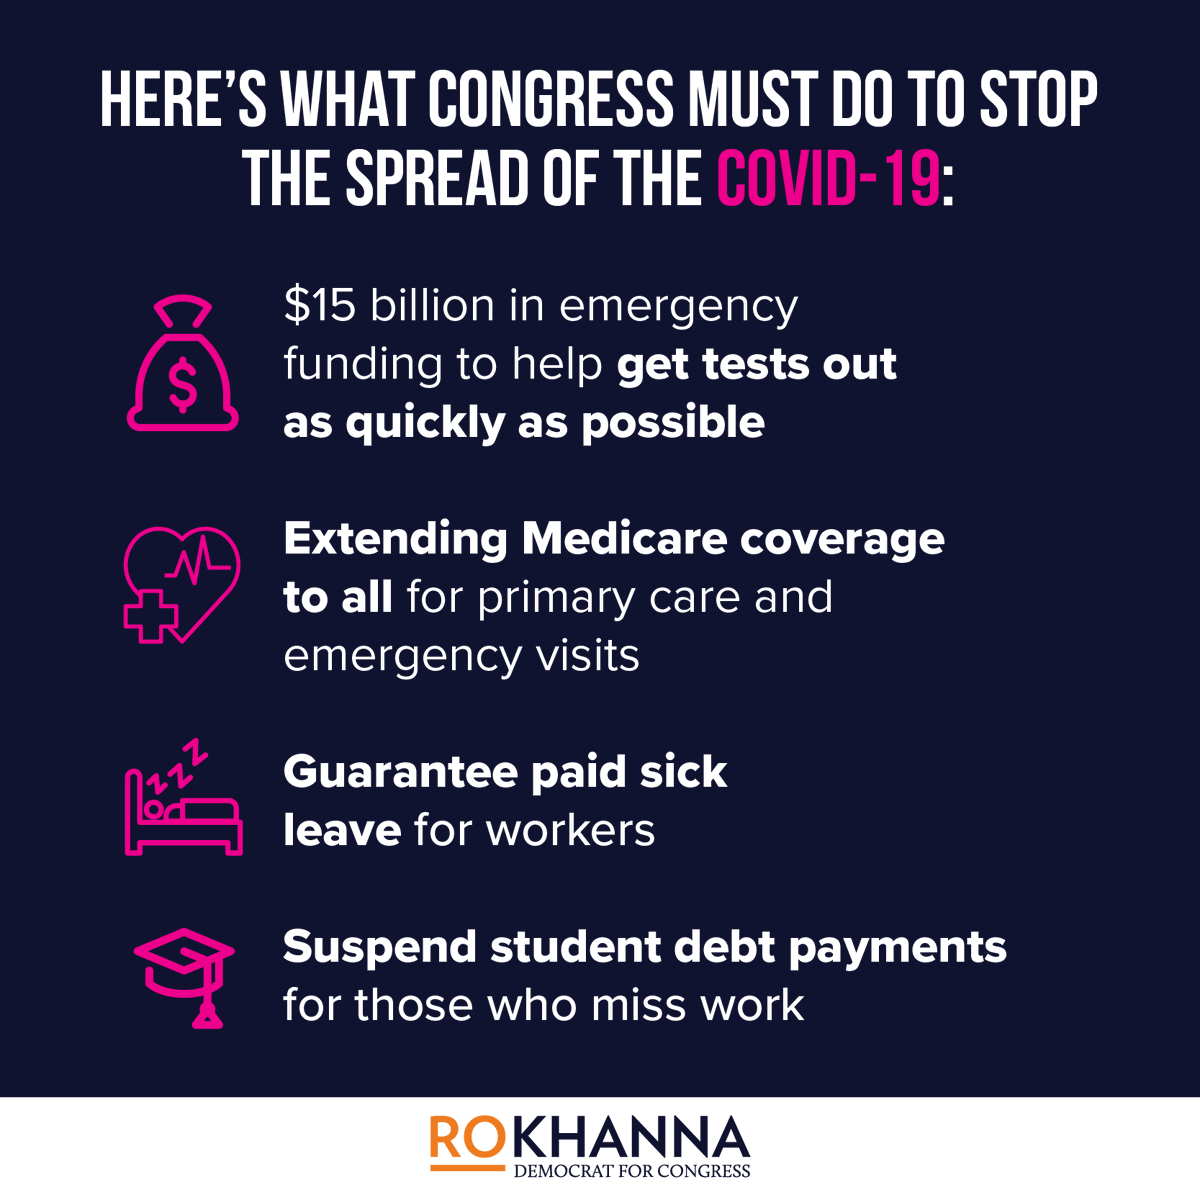 Congress must take immediate action to stop the spread of COVID-19.